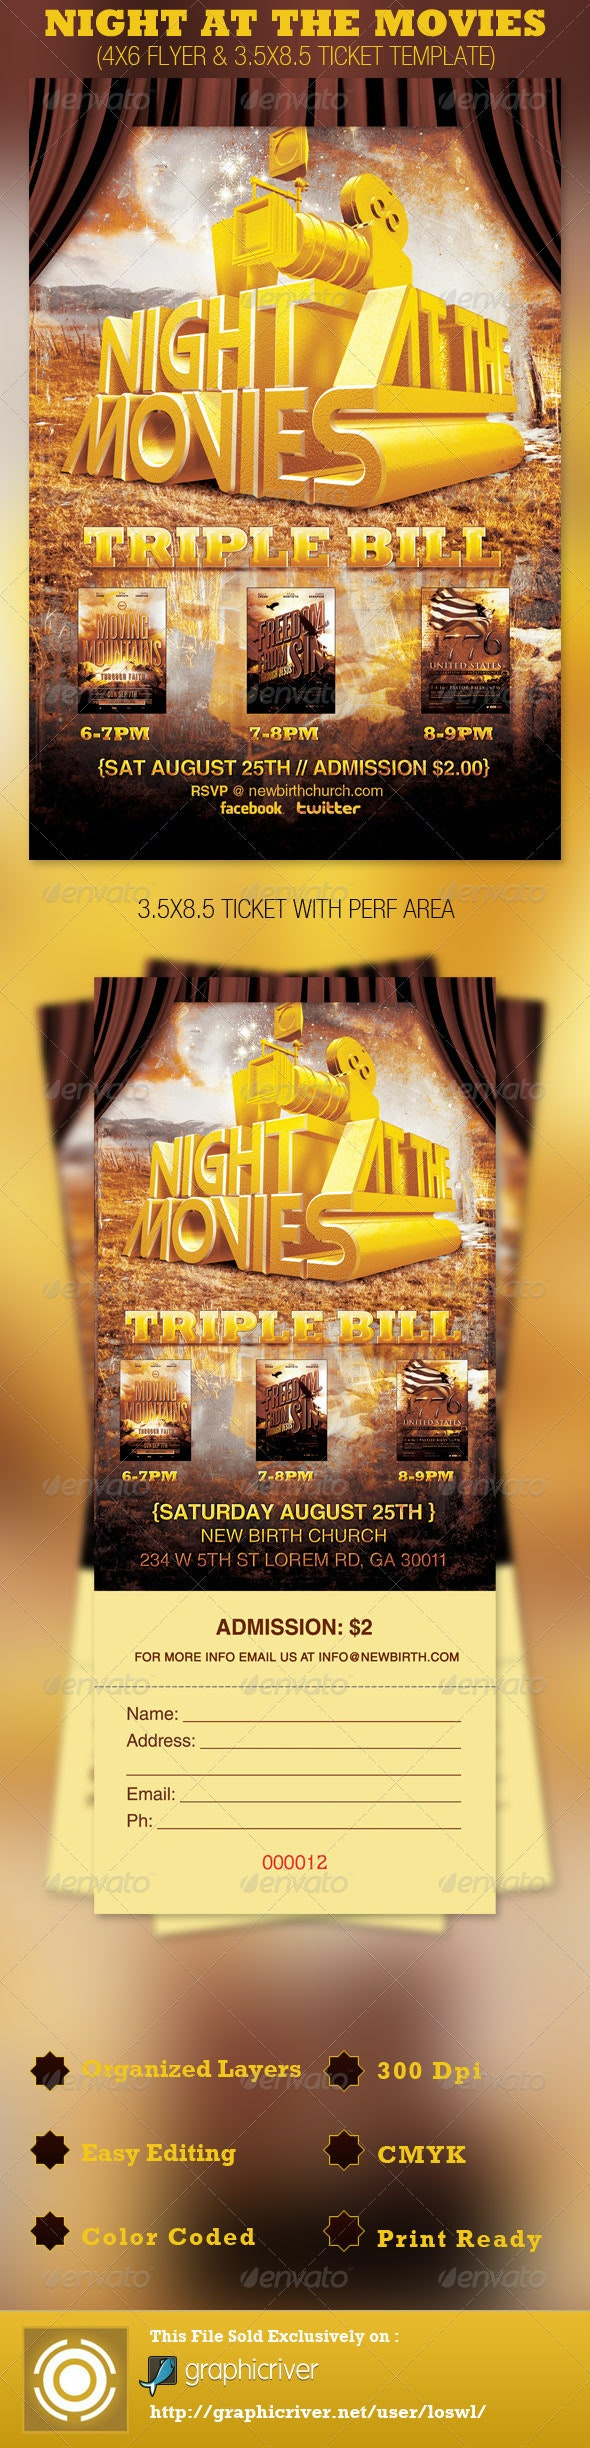 Night at the Movies Church Flyer and Ticket - Church Flyers